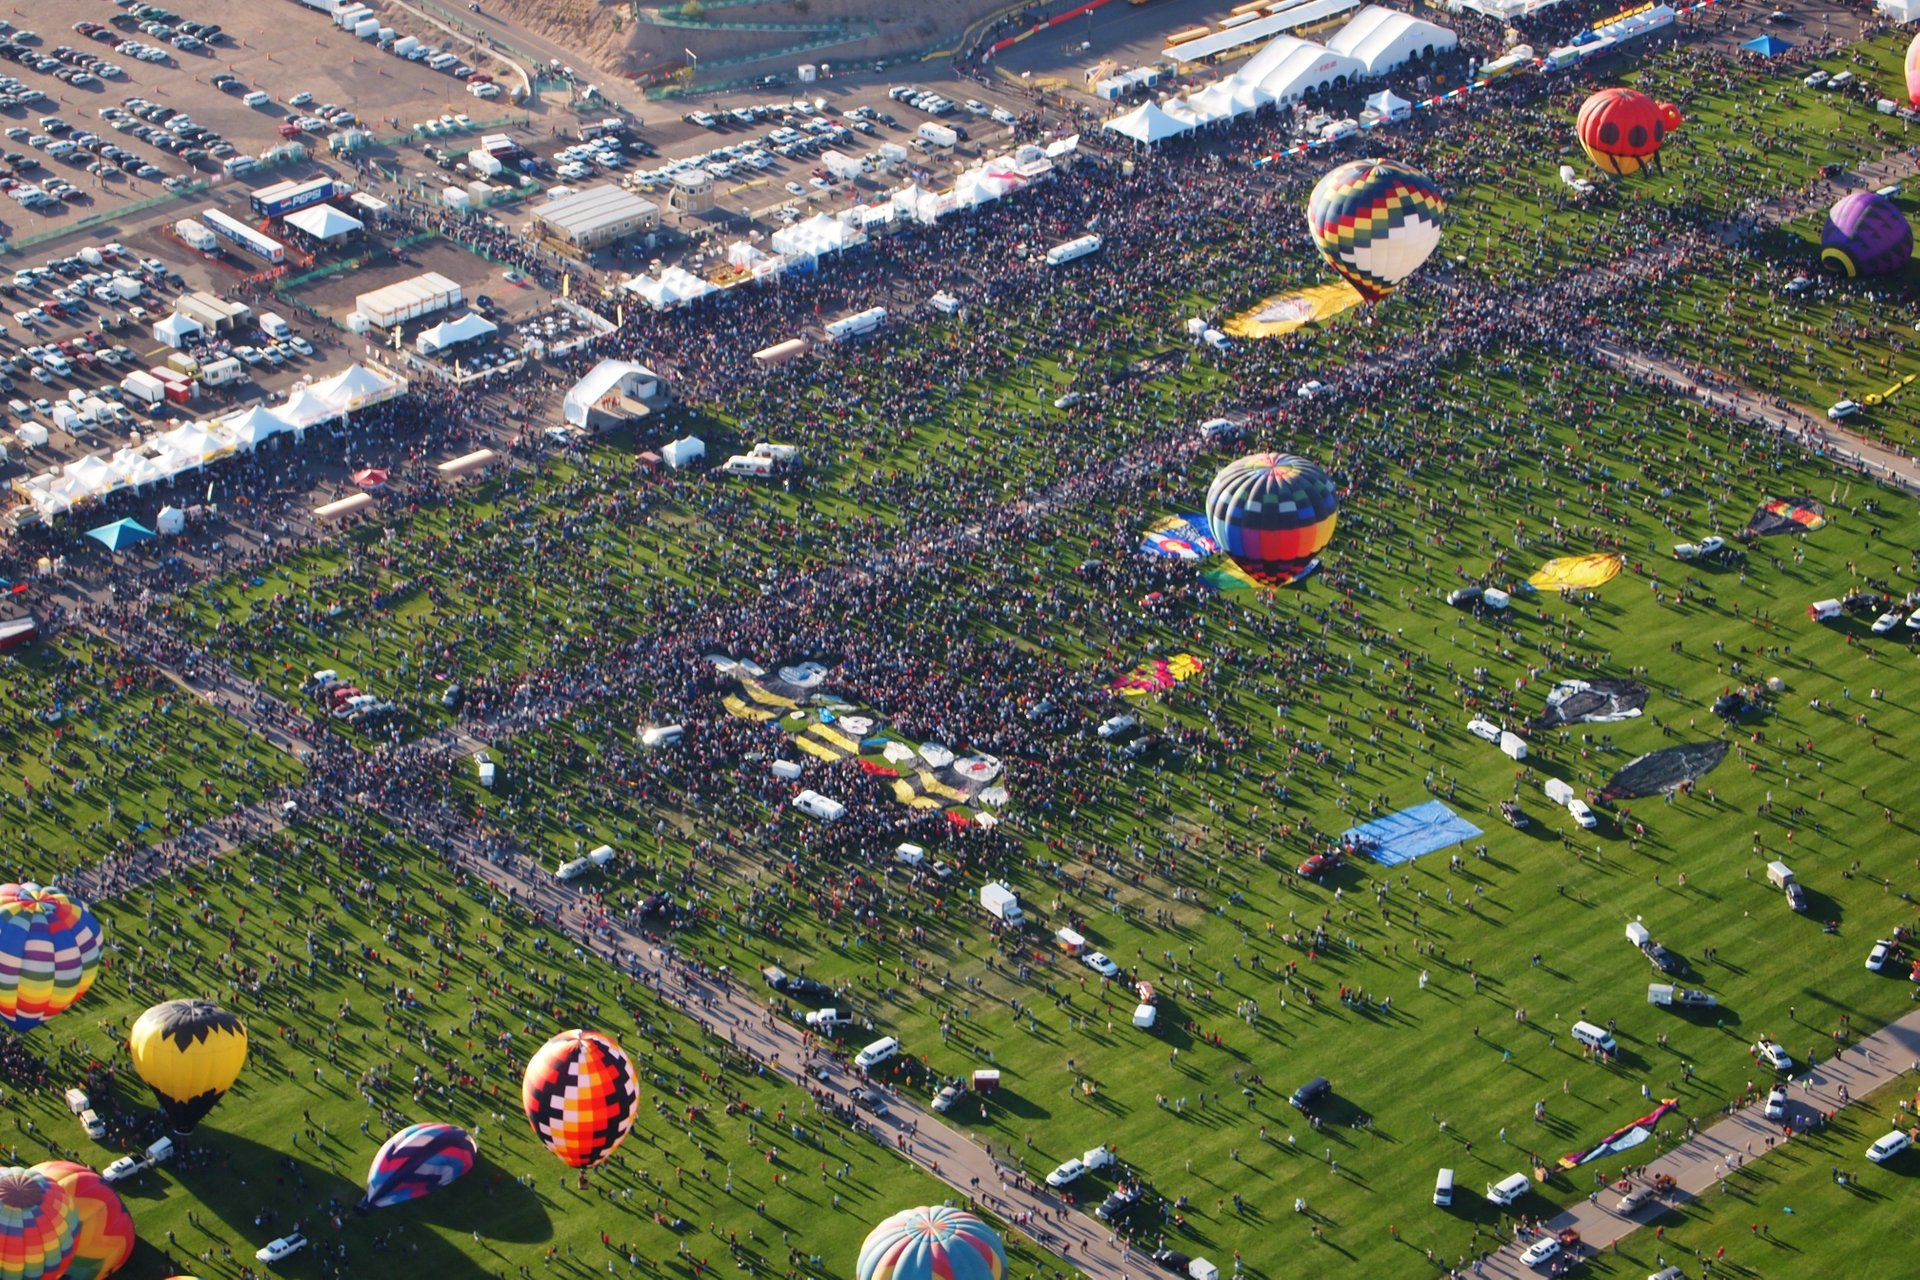 View of the balloon field from The Madhatter hot air balloon for the Albuquerque International Balloon Fiesta  2020